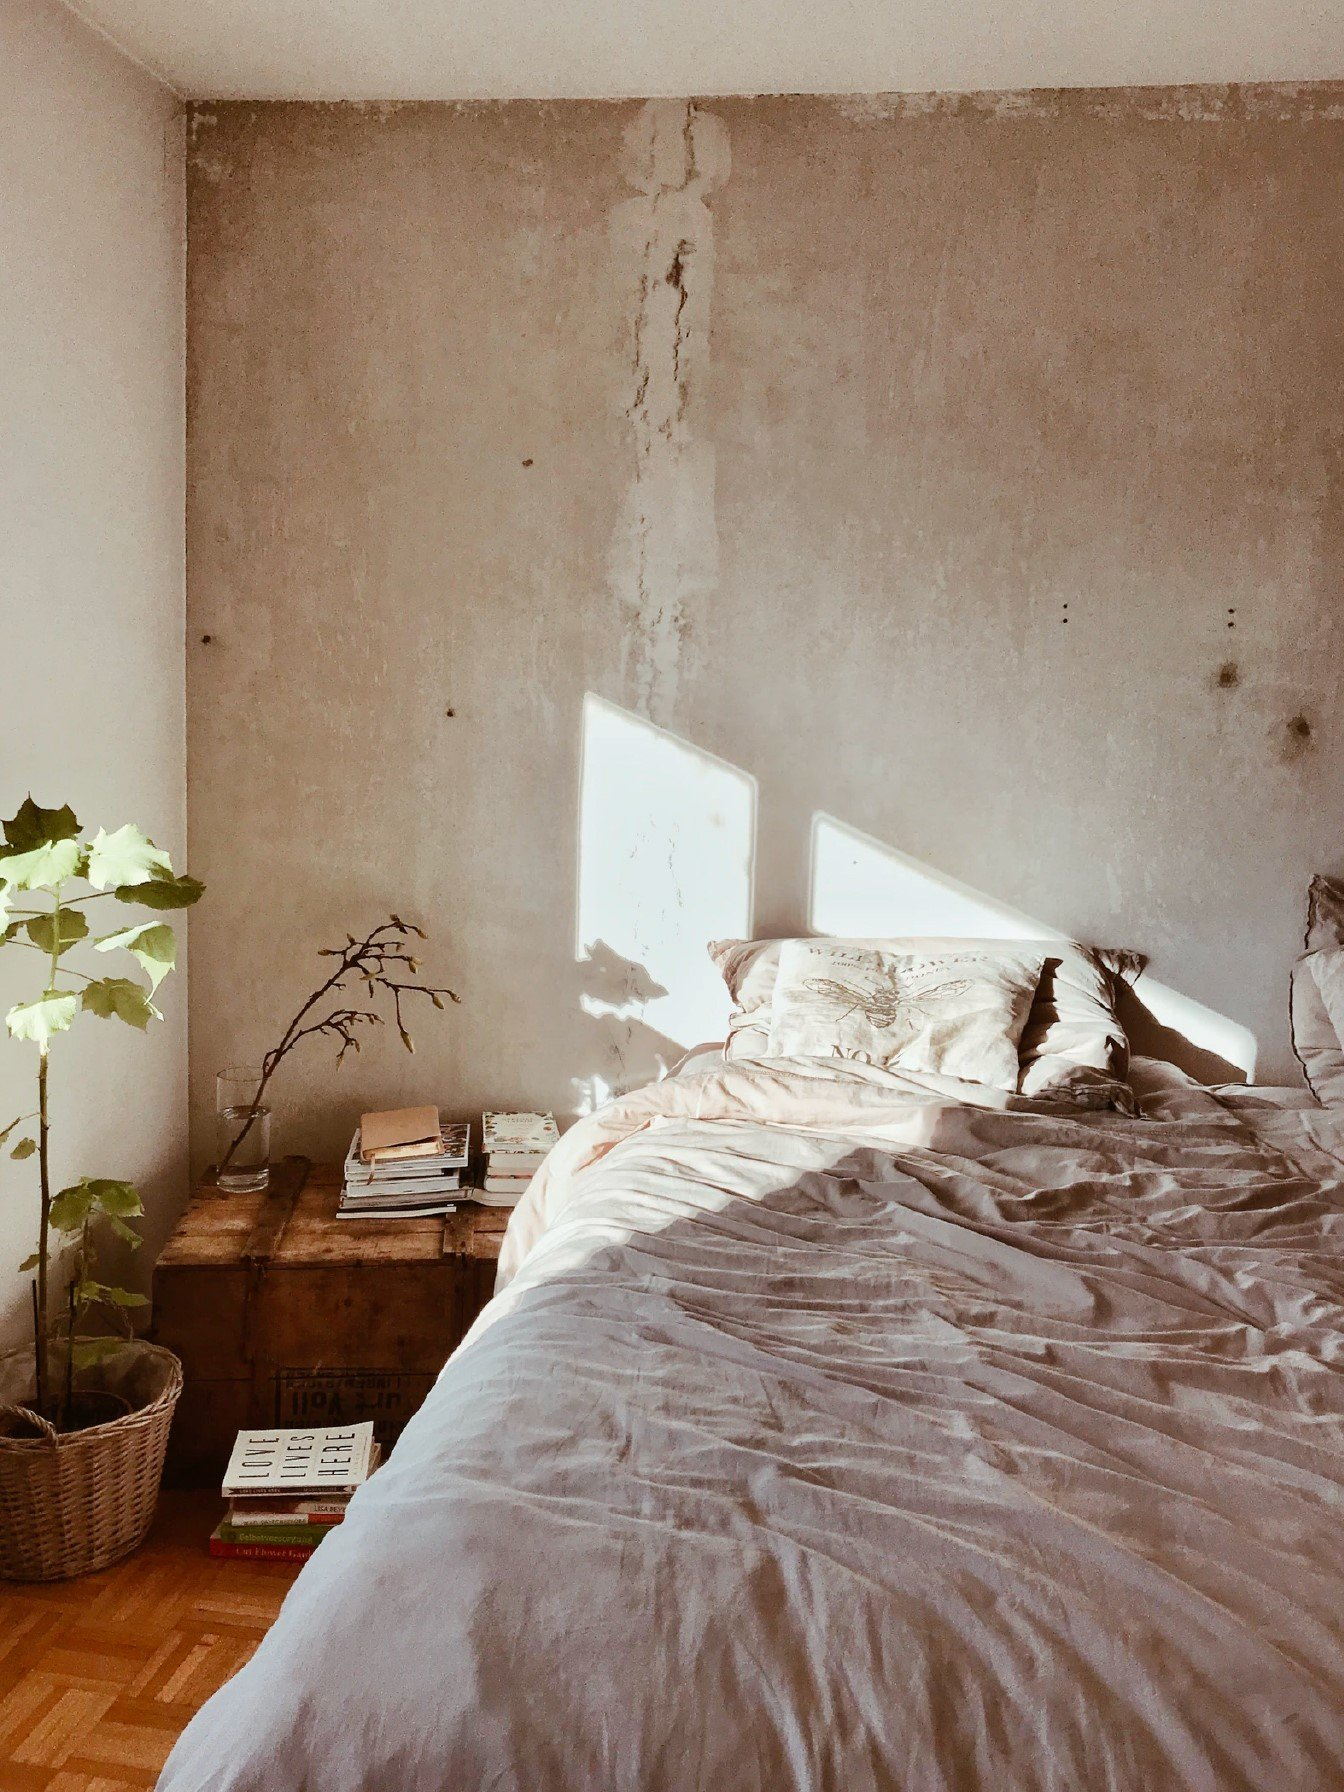 Top Tips on Creating a Perfect Hygge Evening In